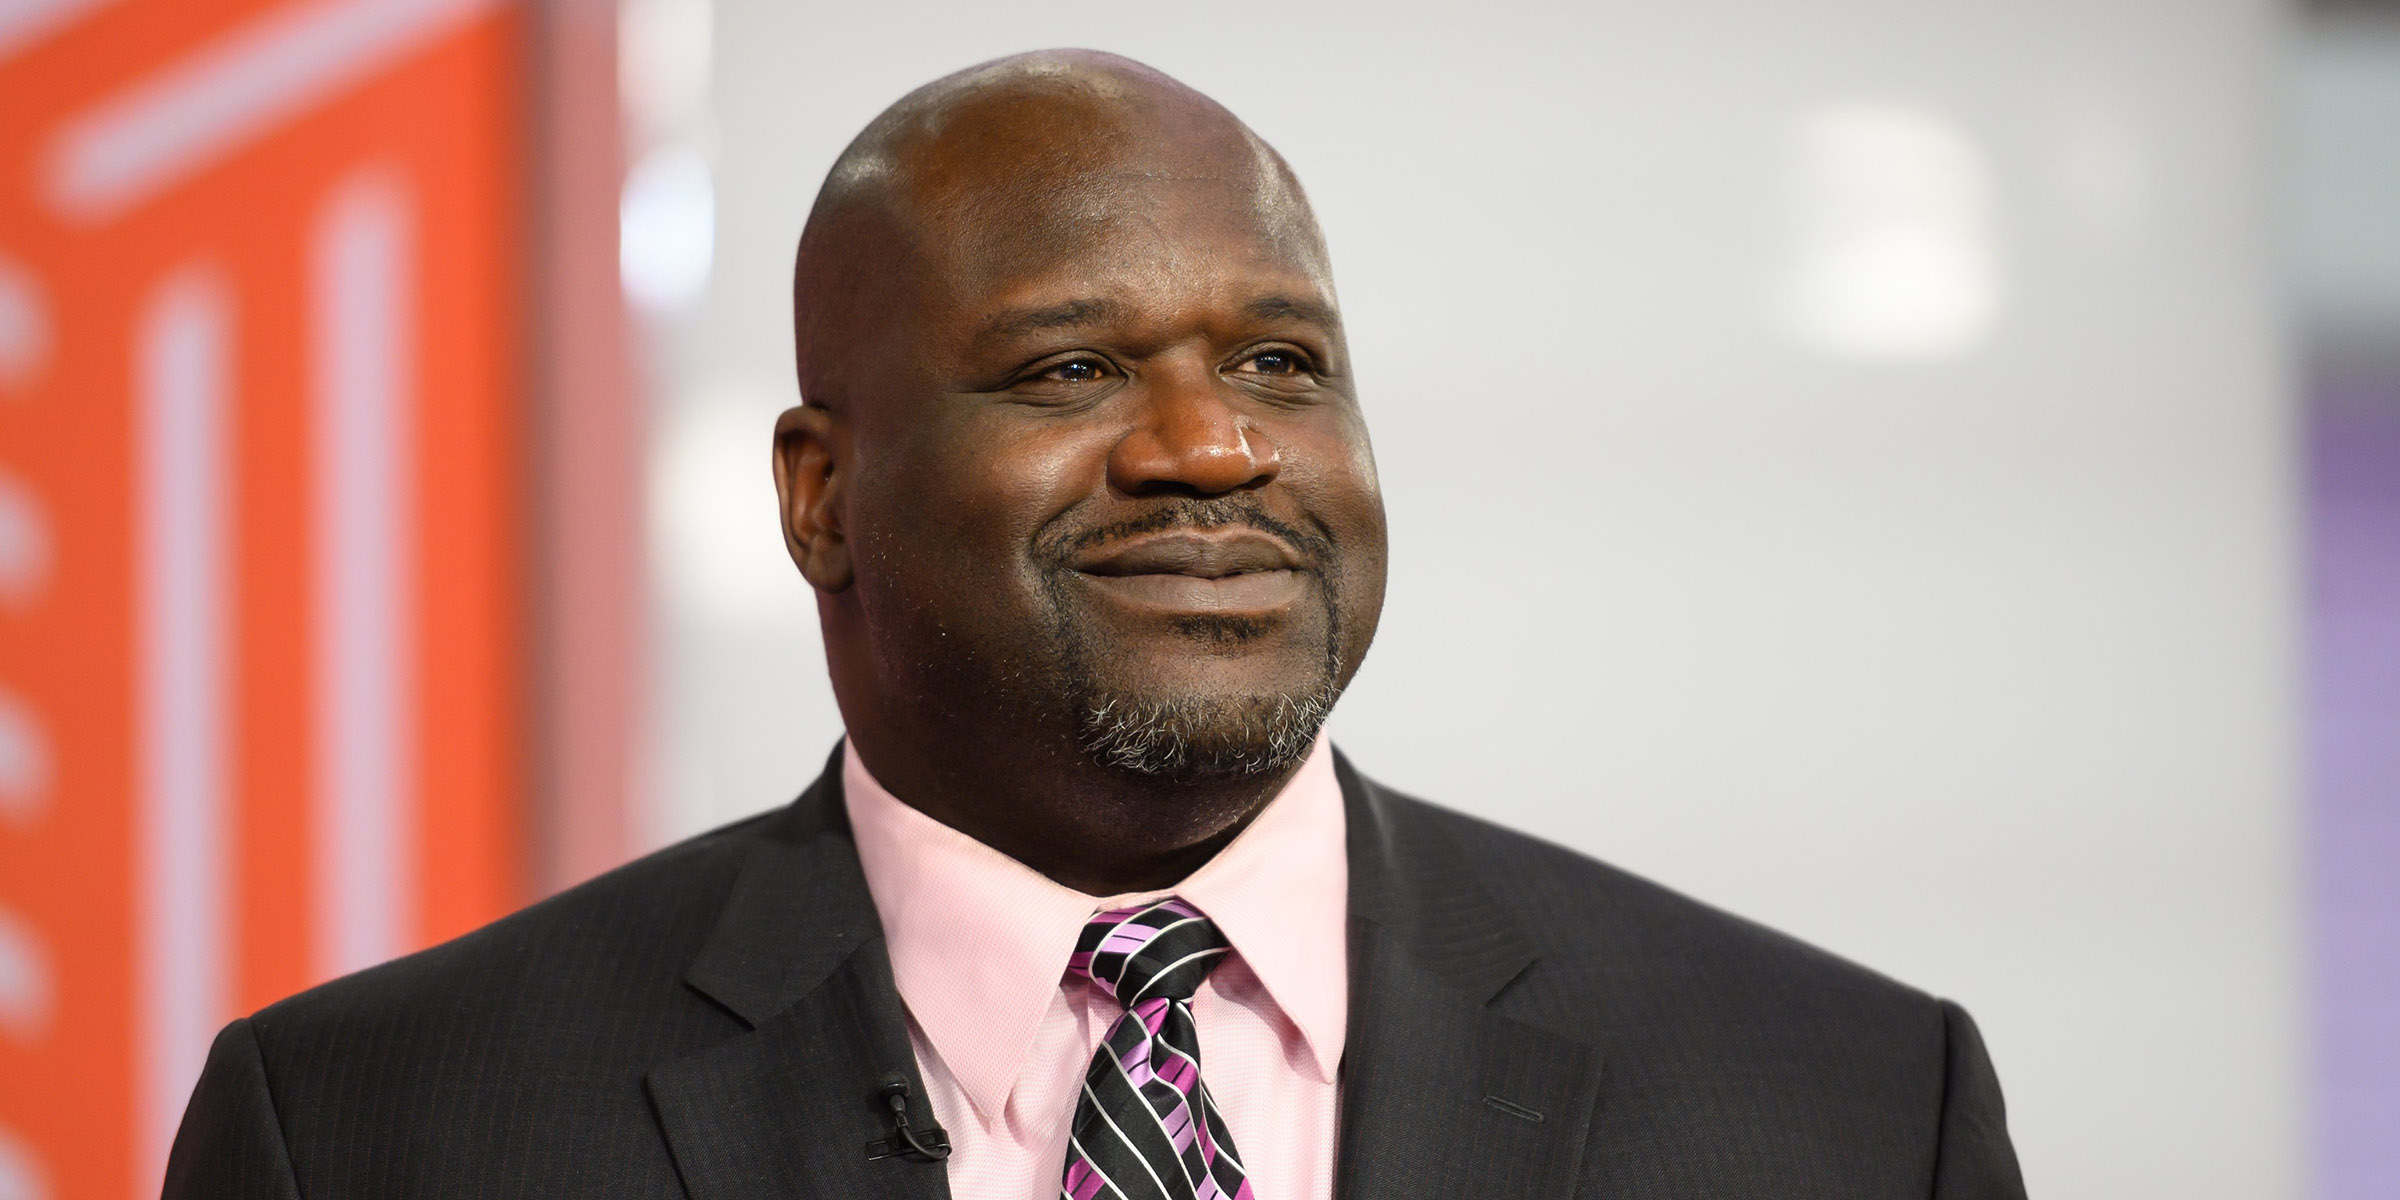 Shaquille O'Neal and heart health: Shaq shares advice to prevent heart disease